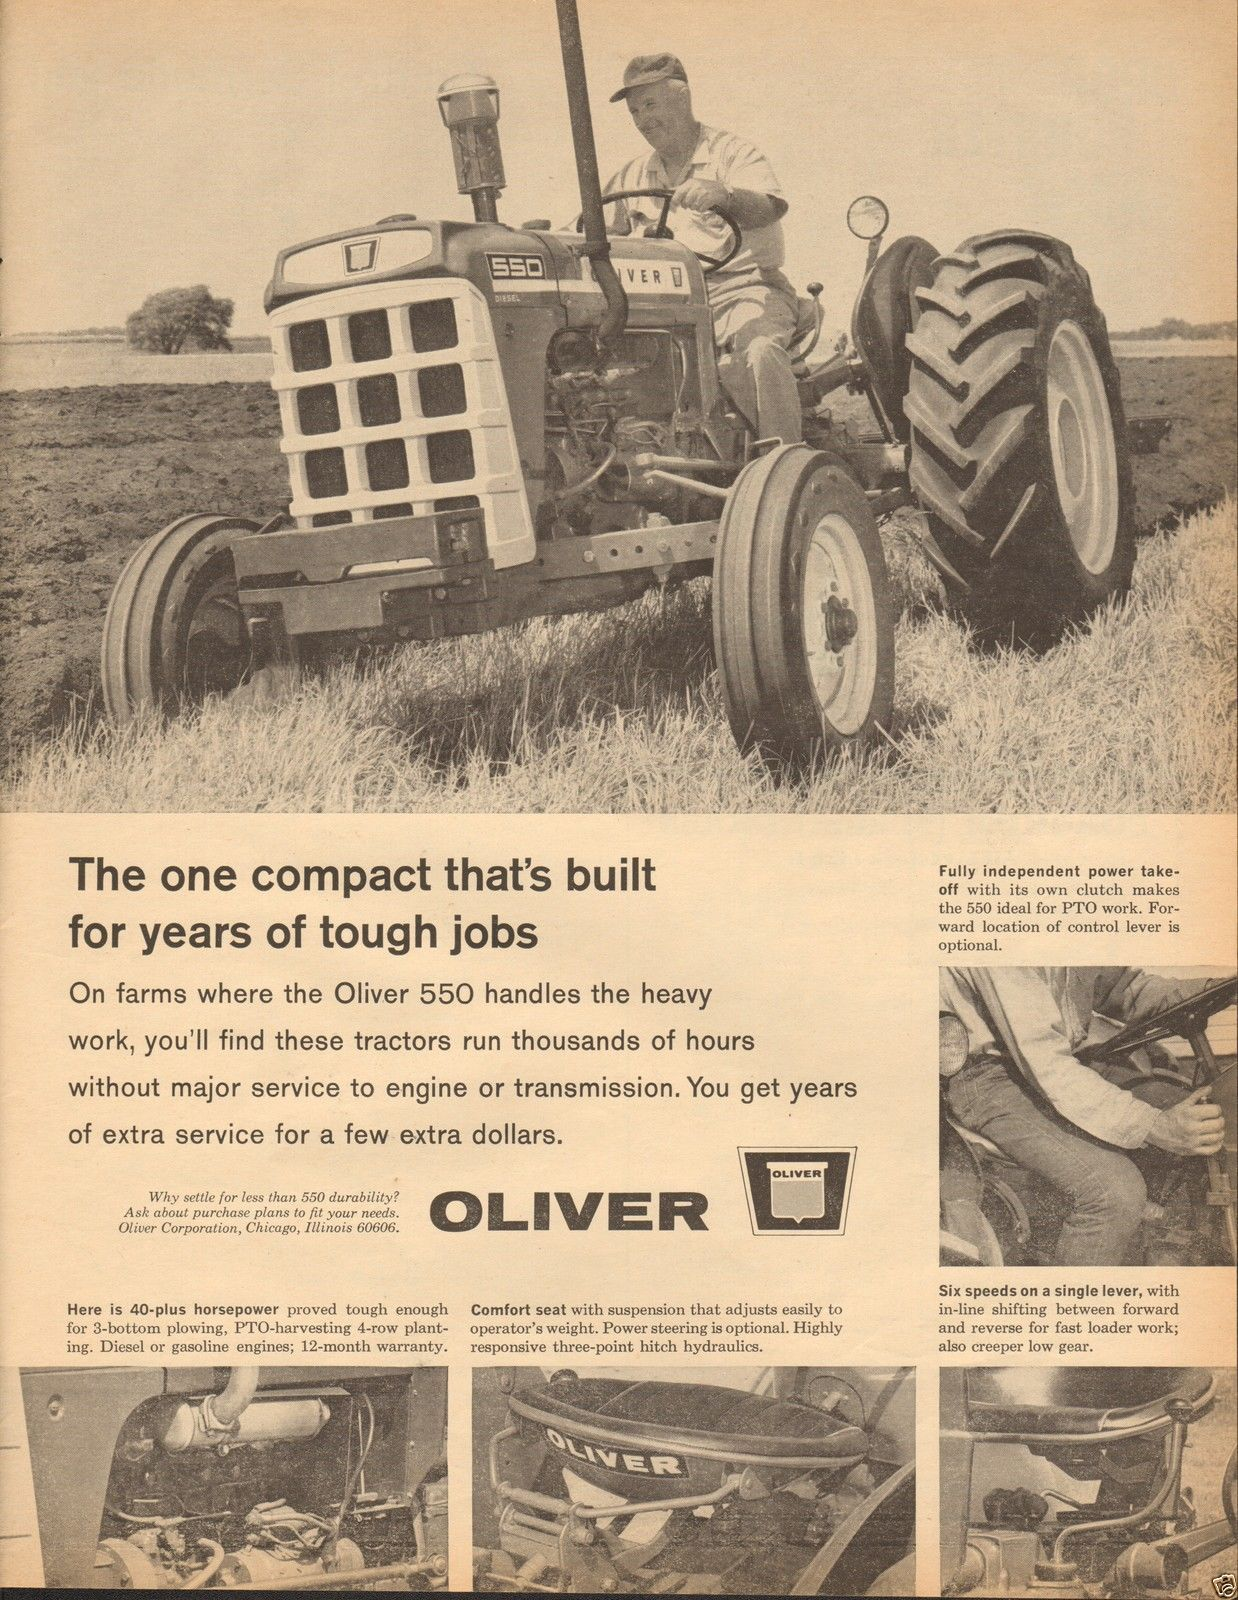 Oliver 550 Diesel Wiring Harness Wire Center Tractor Diagram 1965 Farm Large Magazine Ad Ebay Rh Pinterest Com On Craigslist Signs